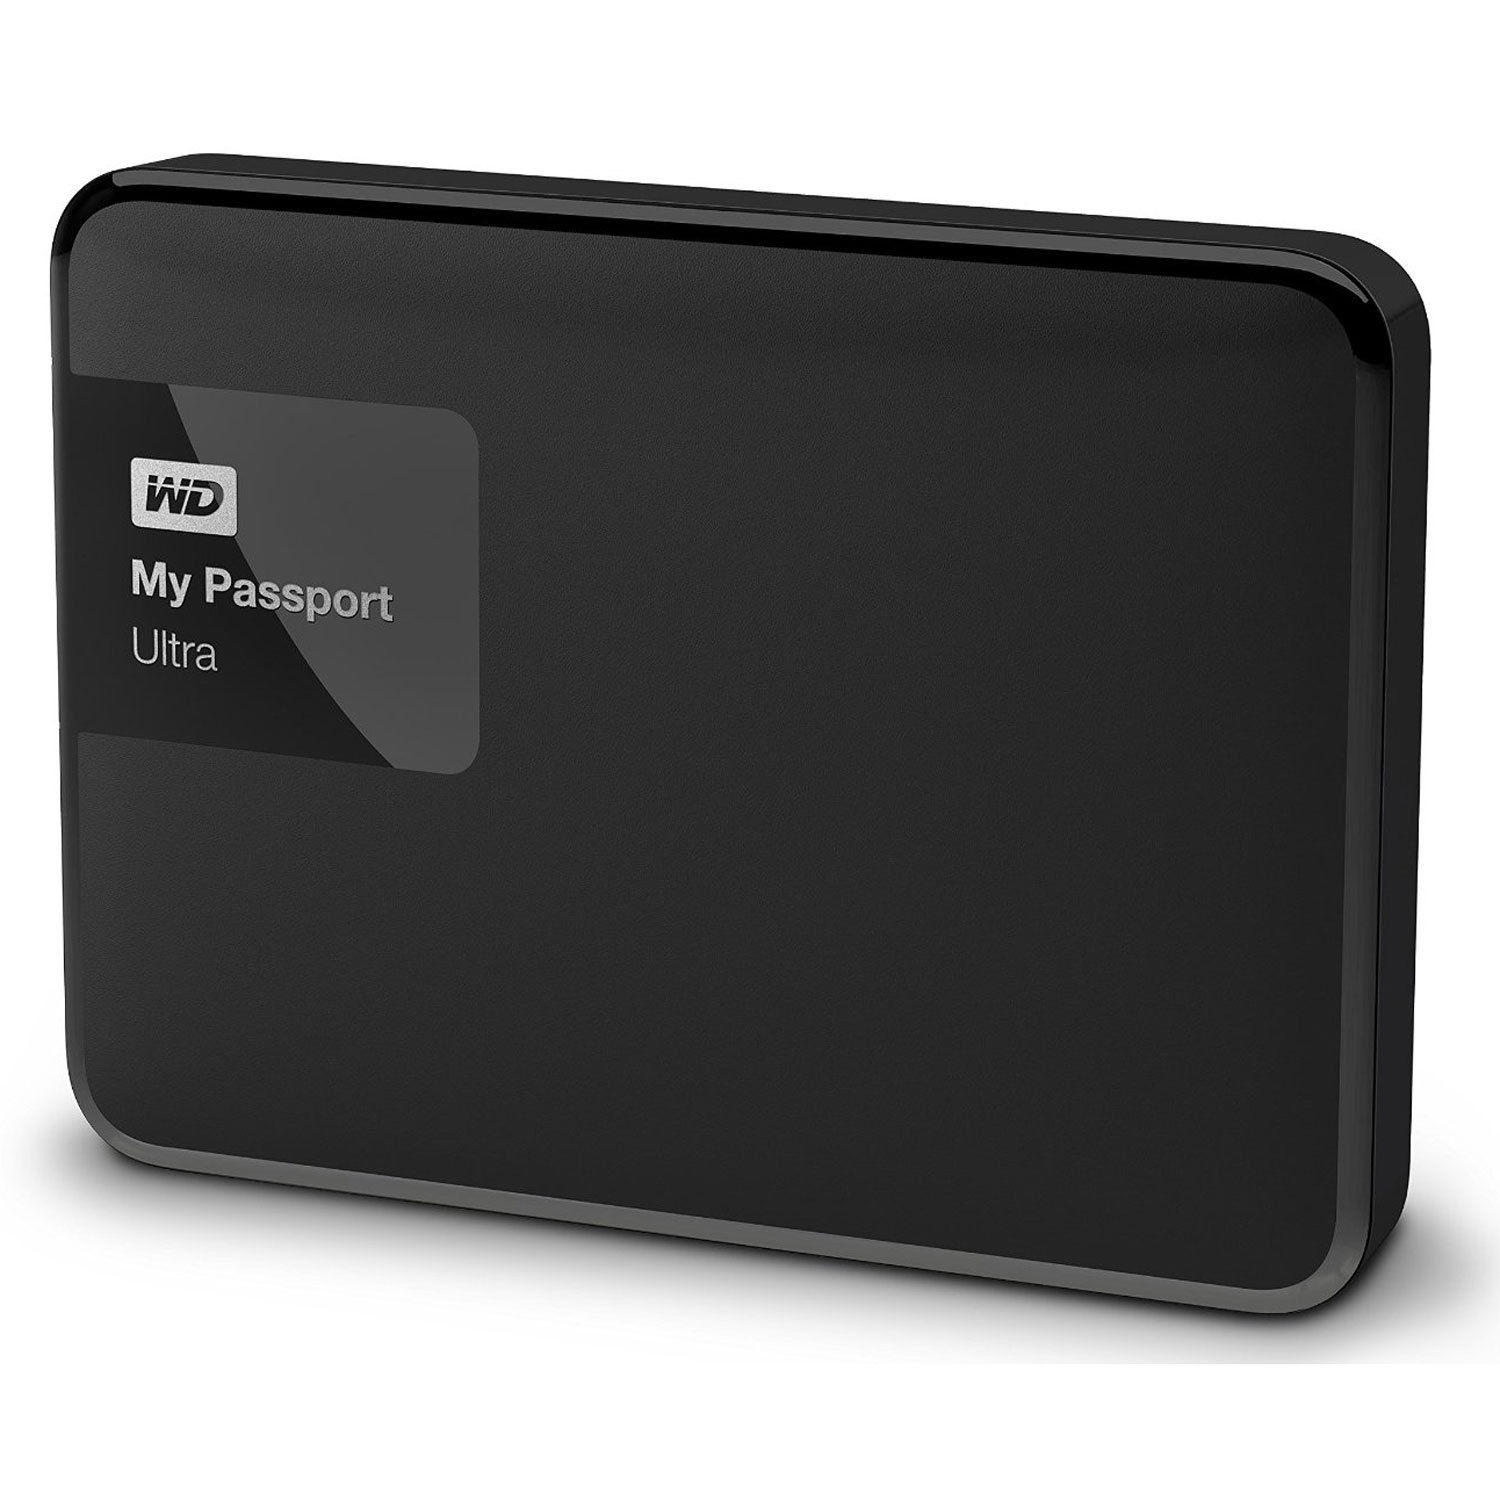 Western Digital My Passport Ultra 1 TB Portable External Hard Drive, Black